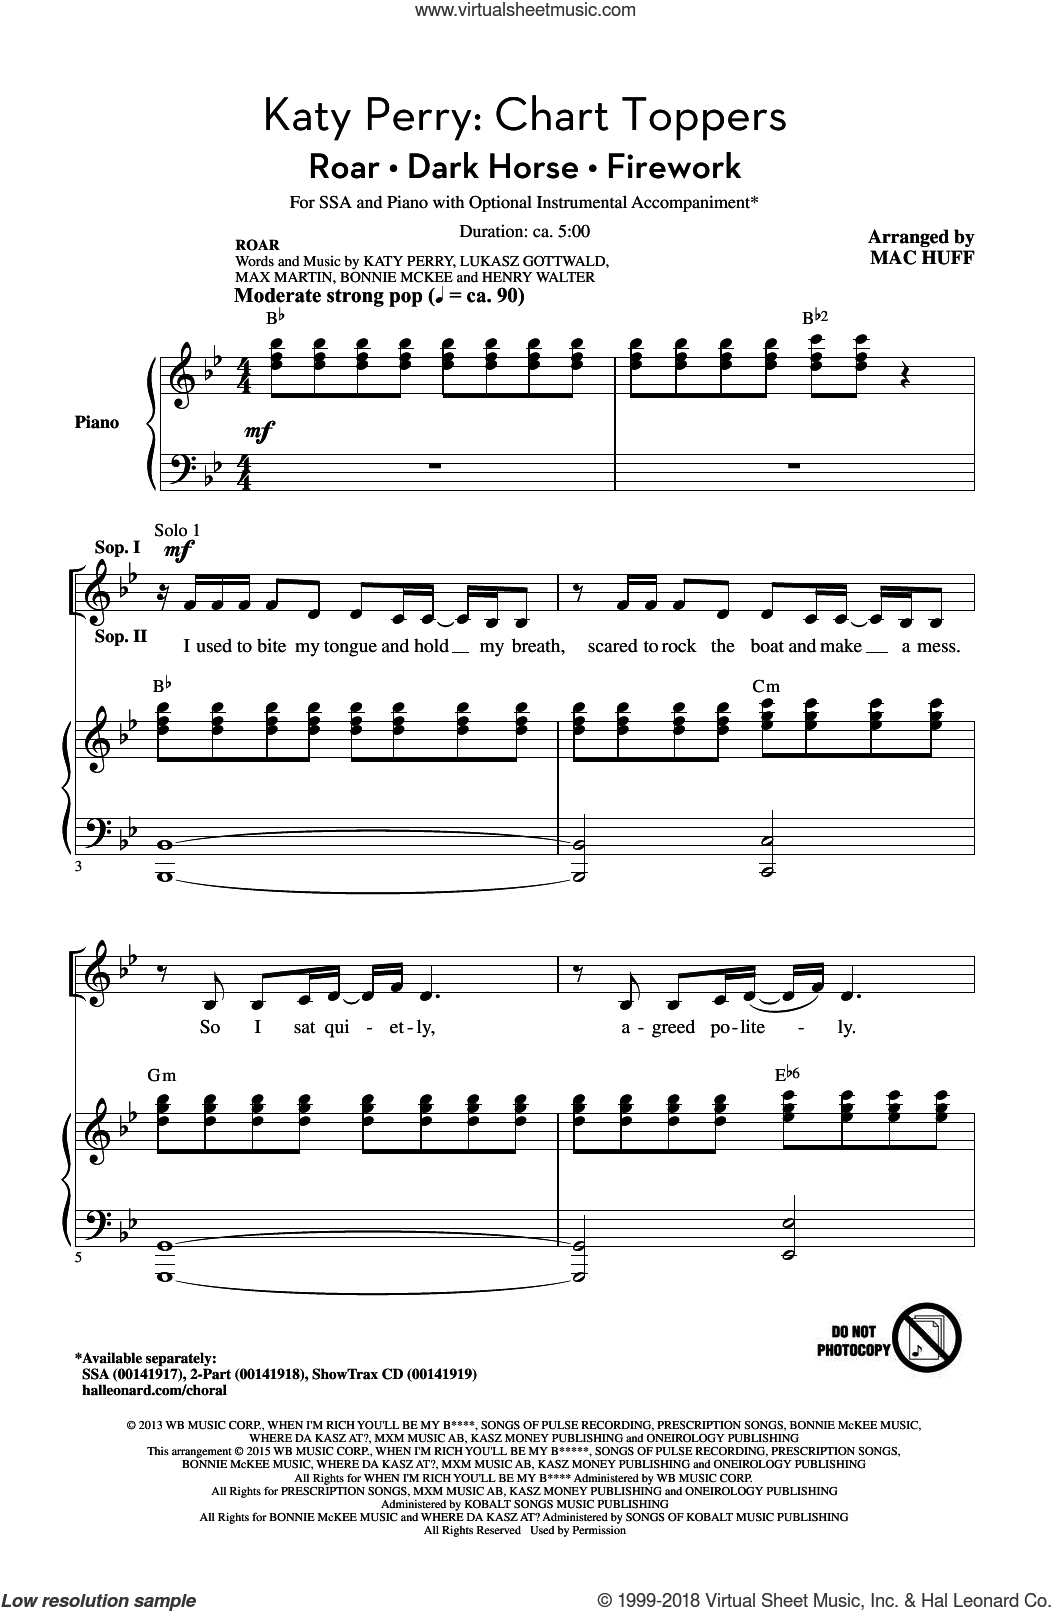 Katy Perry: Chart Toppers sheet music for choir and piano (SSA) by Tor Erik Hermansen, Mac Huff, Bonnie McKee, Henry Walter, Lukasz Gottwald, Max Martin, Sarah Hudson, Ester Dean, Katy Perry, Mikkel Eriksen and Sandy Wilhelm. Score Image Preview.